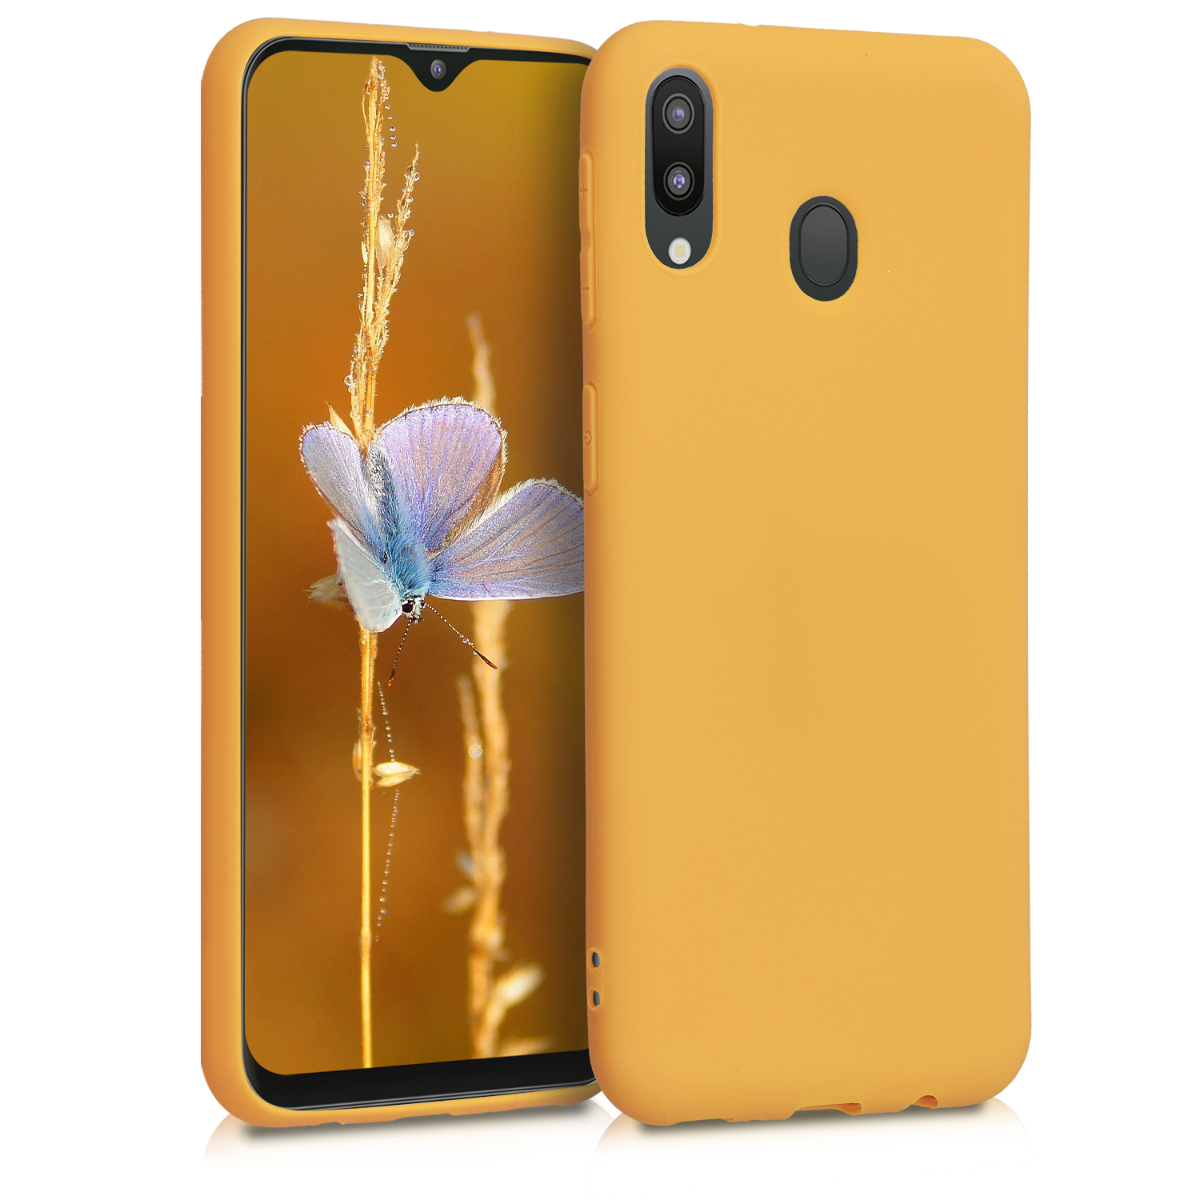 KW Θήκη Σιλικόνης Samsung Galaxy M20 - Honey Yellow (48309.143)